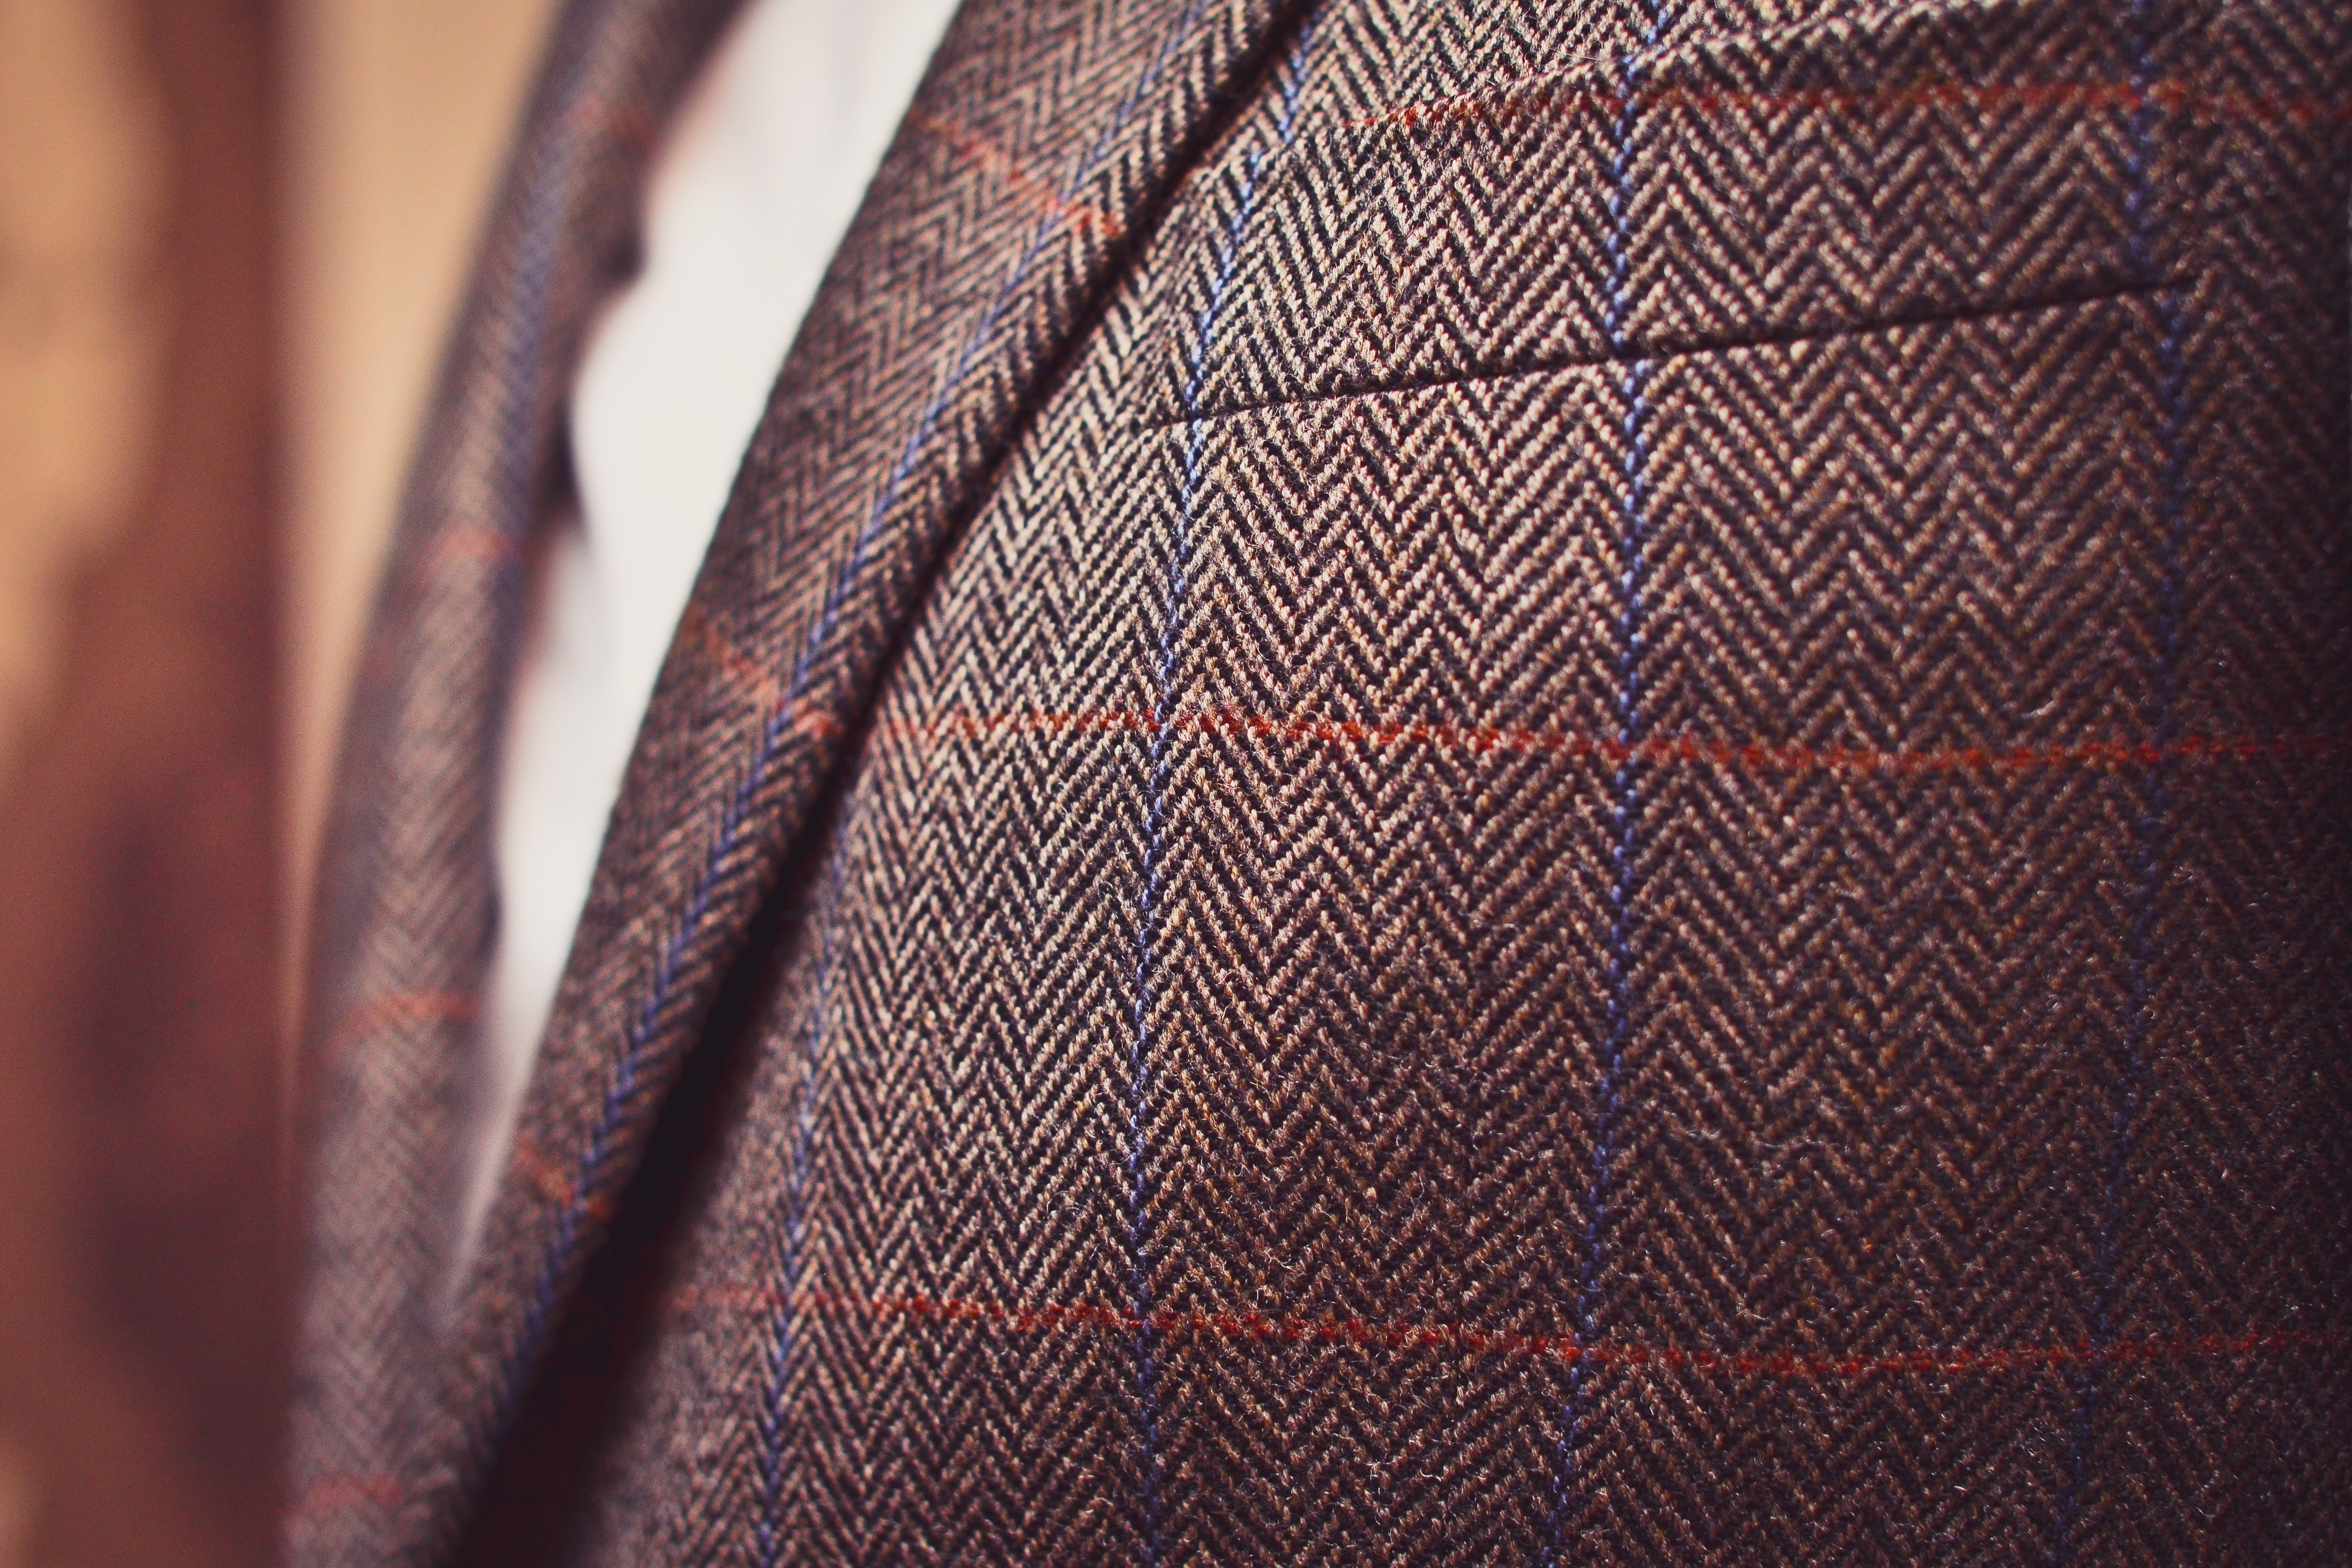 The US will put new tariffs on EU goods including wool suits.